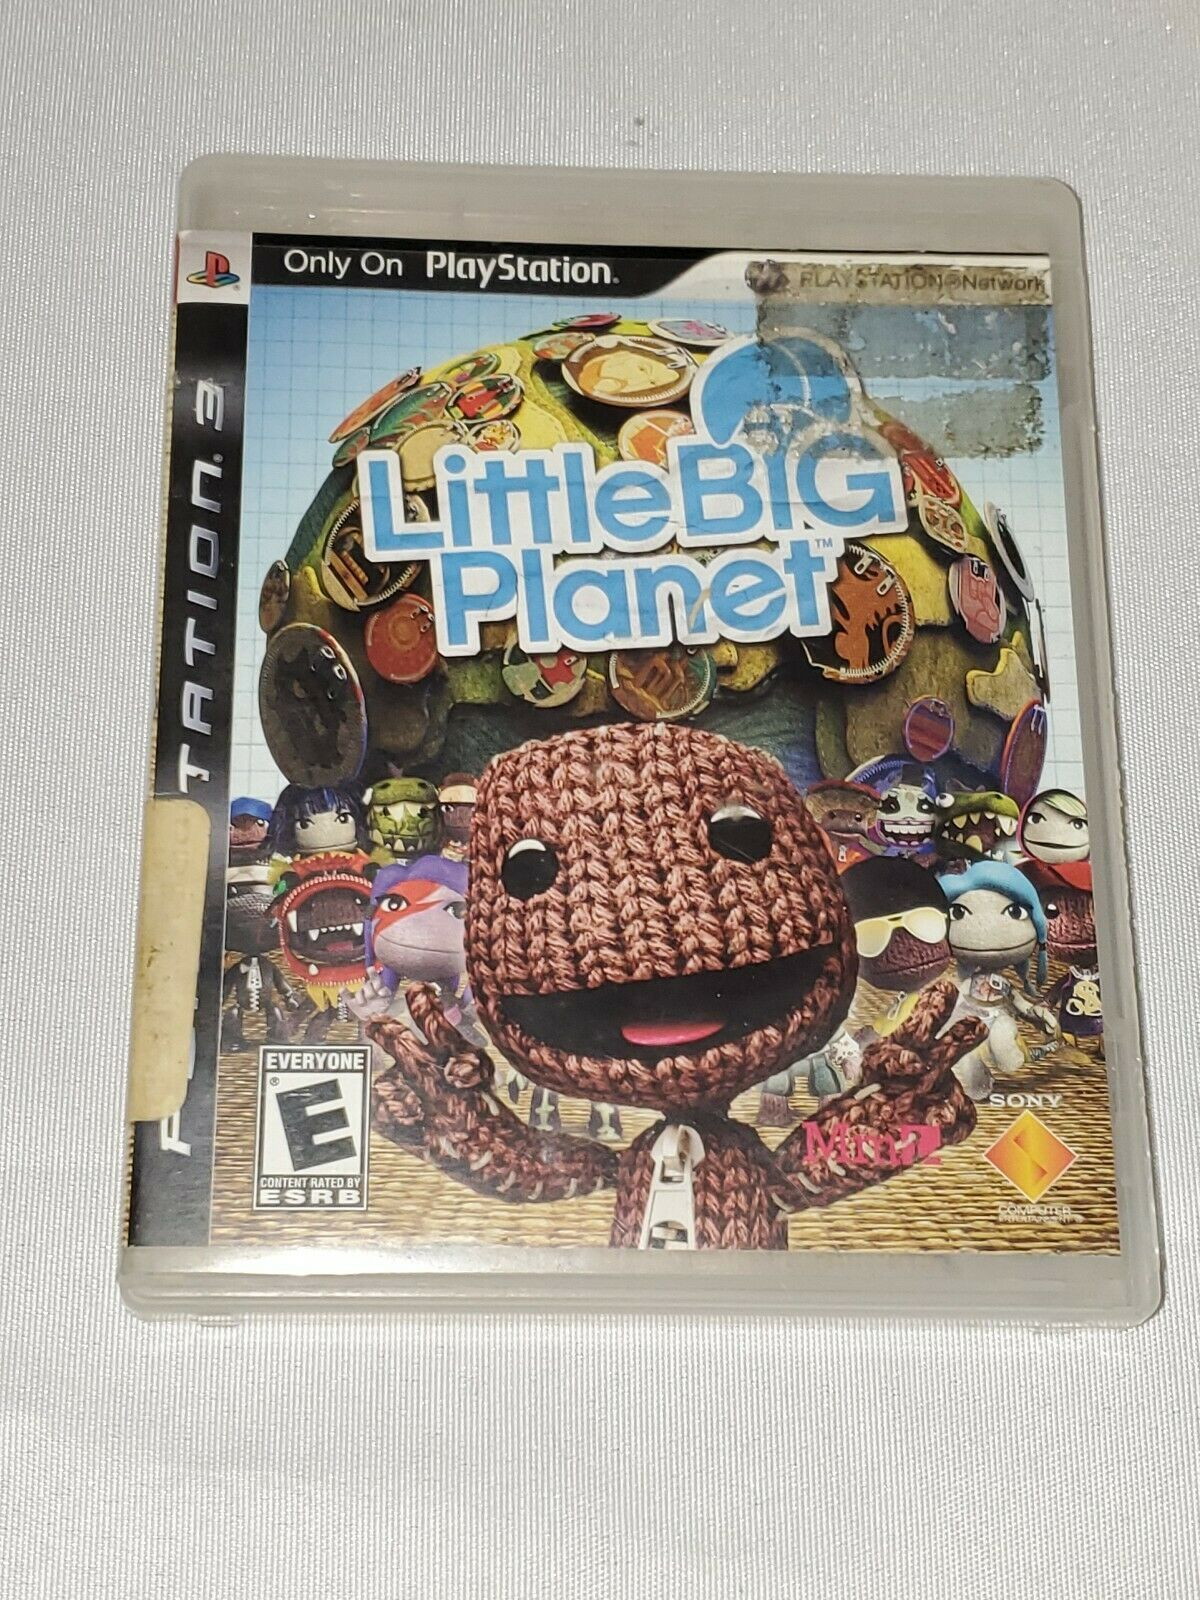 Primary image for Little BIG Planet, Ps3 Game, for everyone, used in good condition